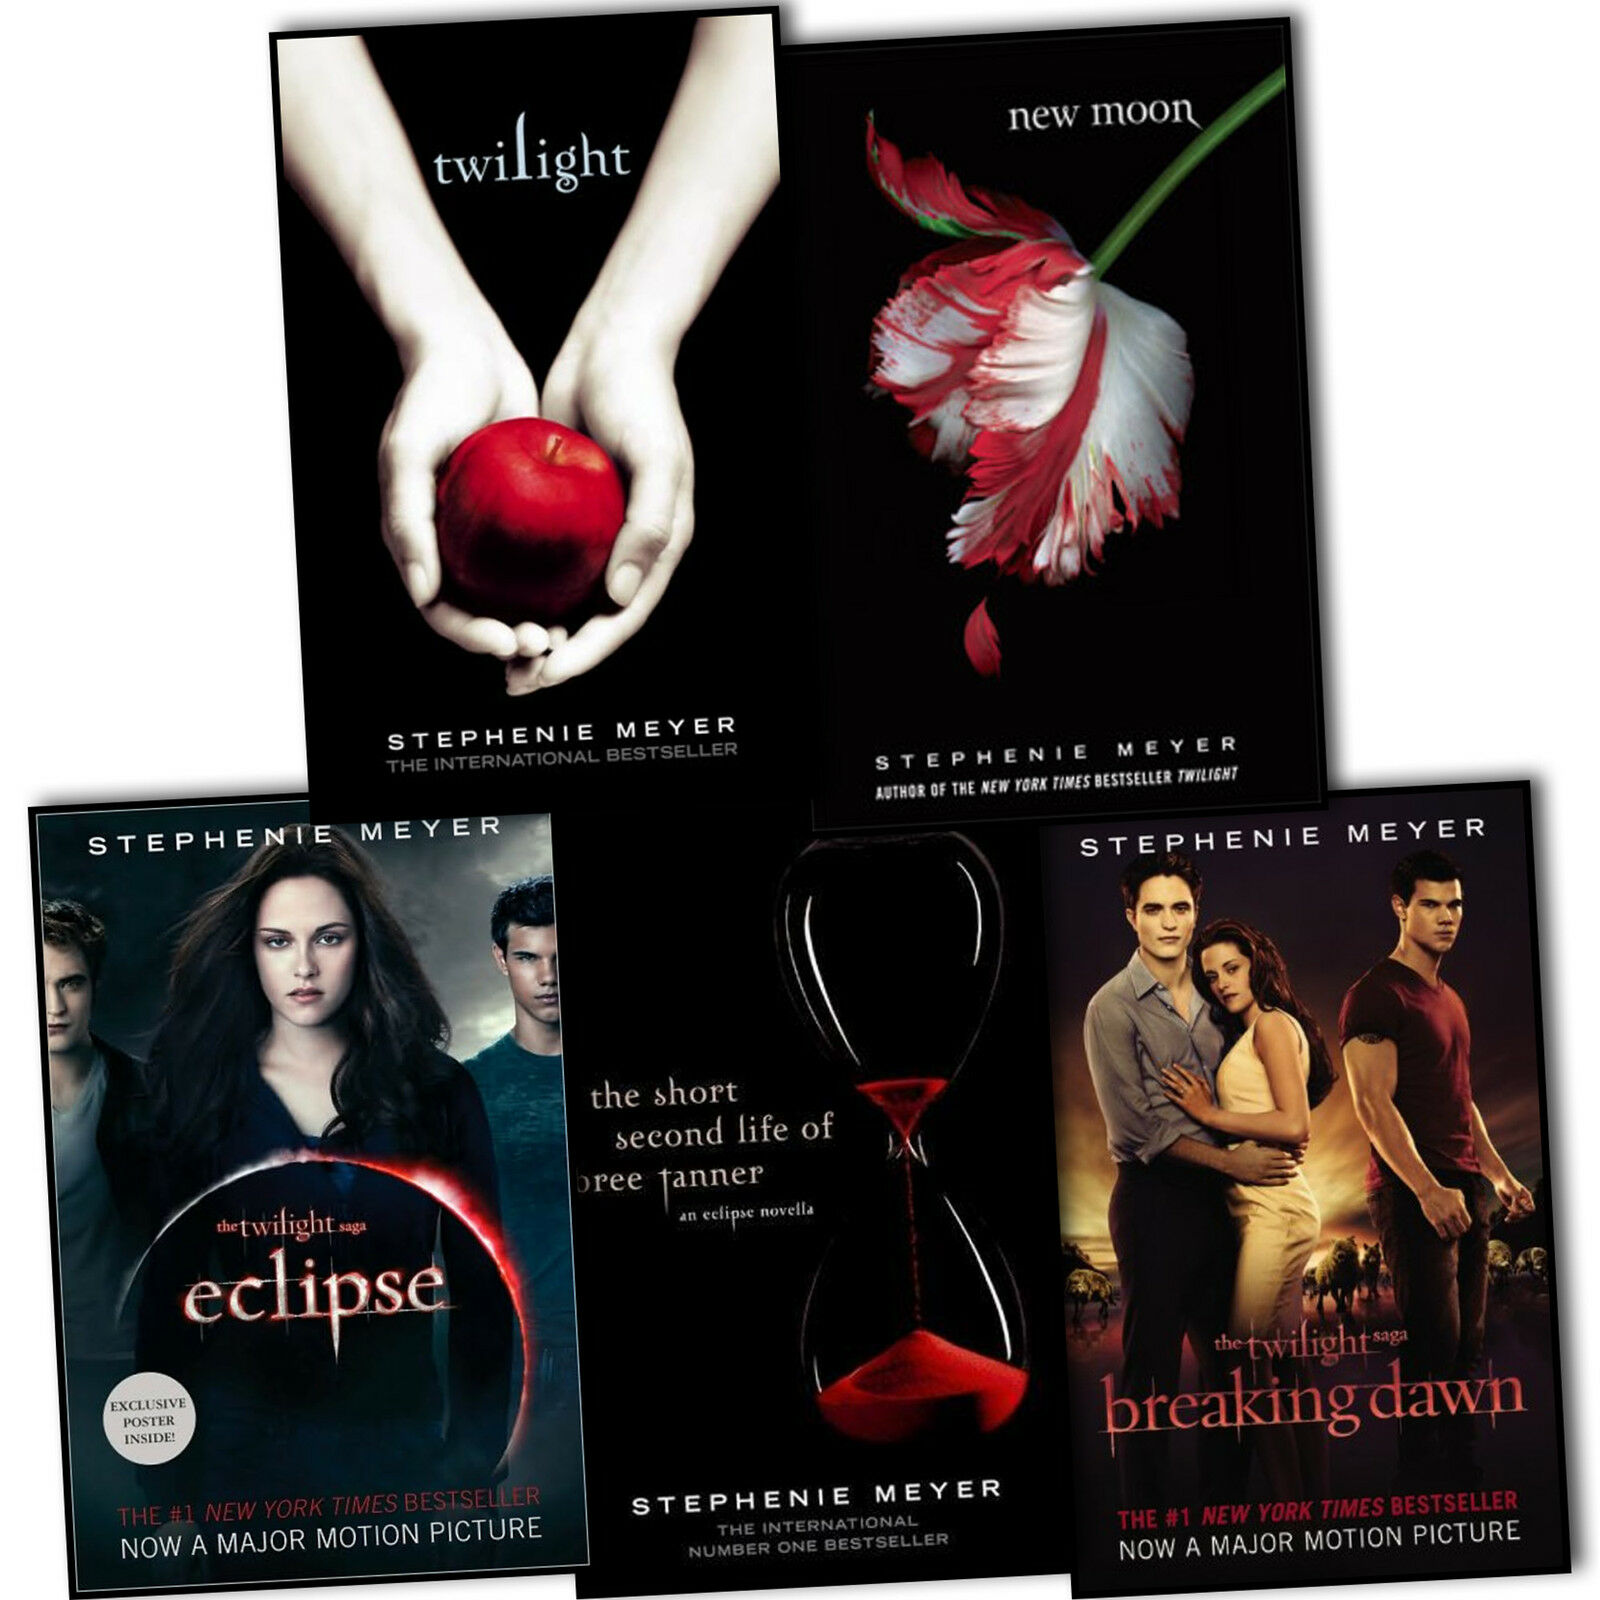 The Twilight Book